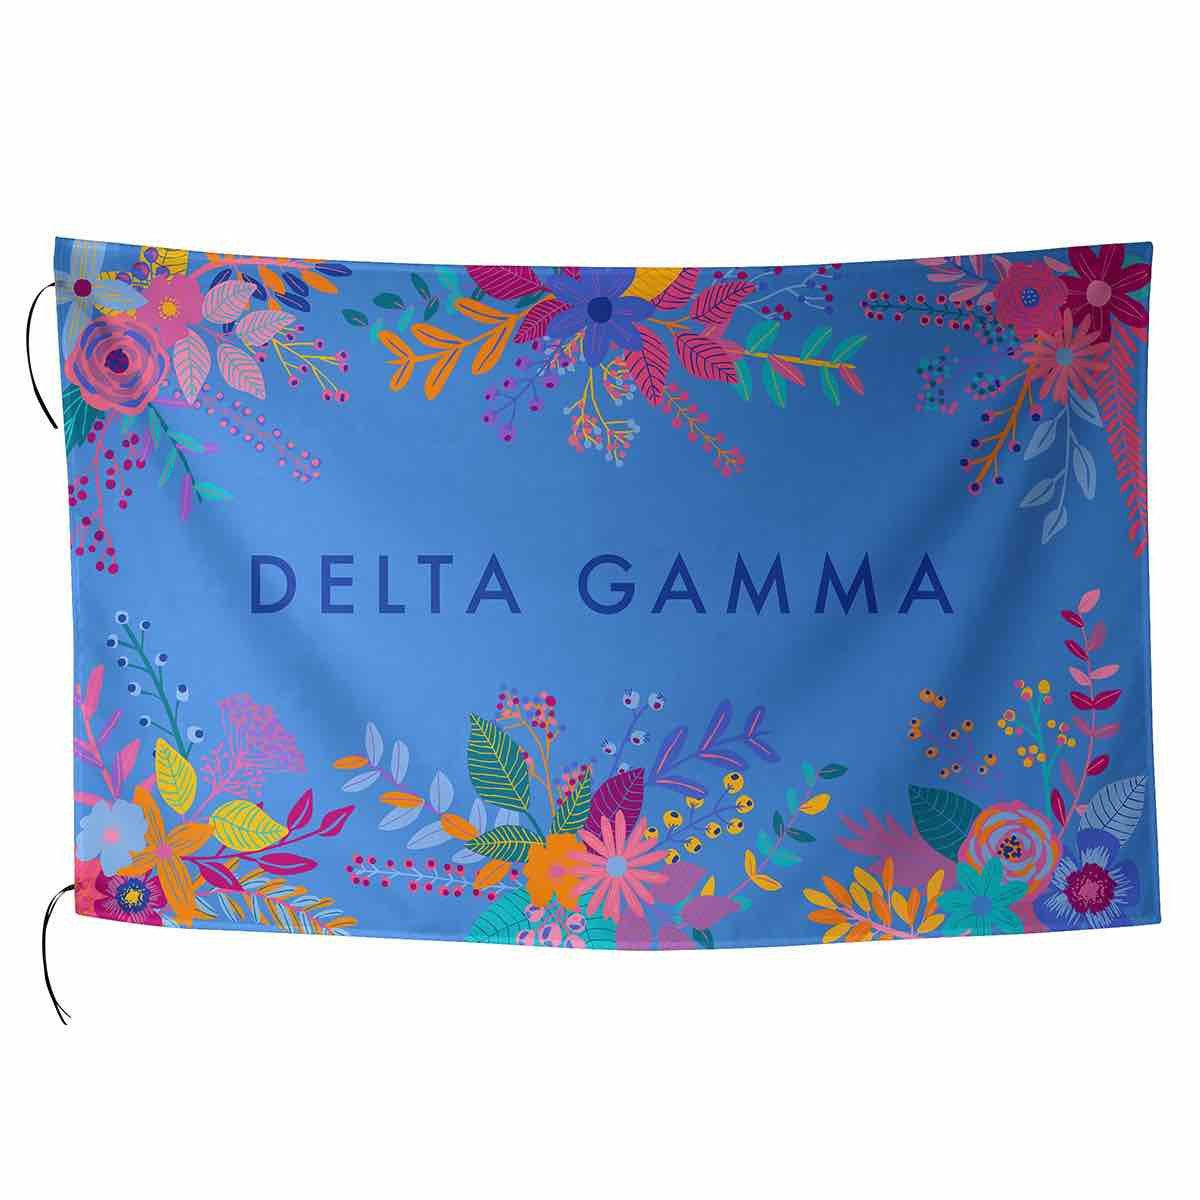 Delta gamma flag md sorority gifts delta gamma symbol with gold and floral print buycottarizona